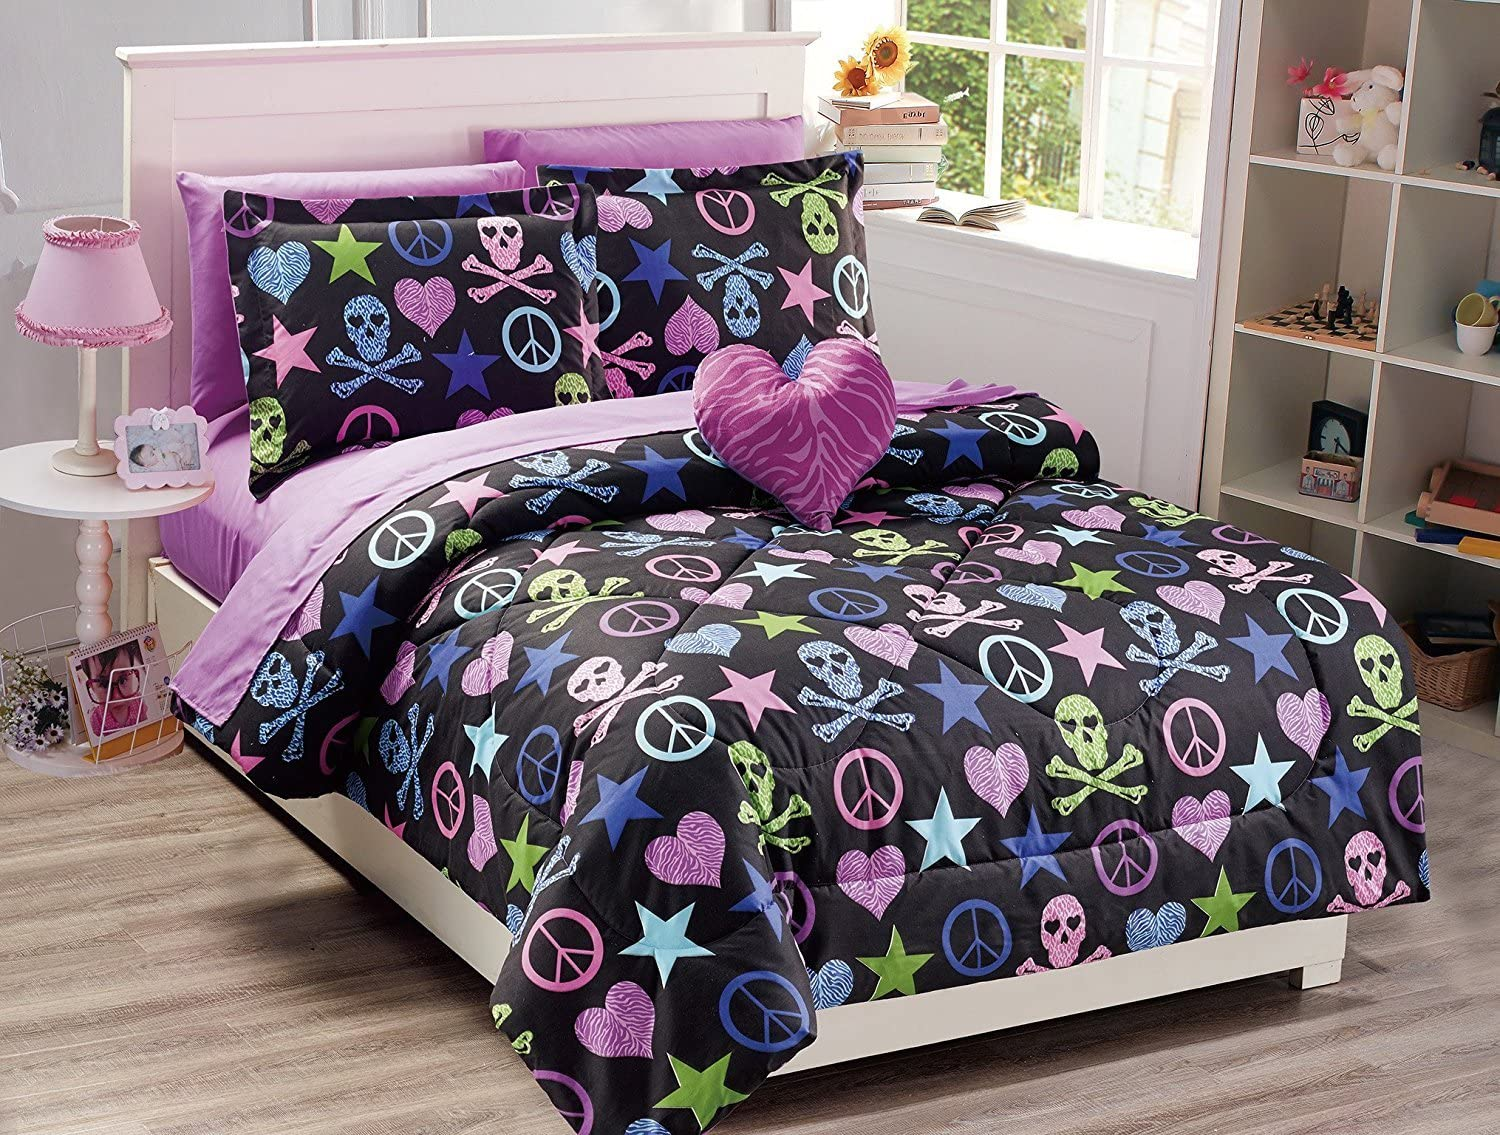 Fancy Collection 8pc Full Size Comforter Set Skulls Peace Signs Hearts Zebra Print Leopard Print Black Pink Purple Blue Green With Furry Pillow New